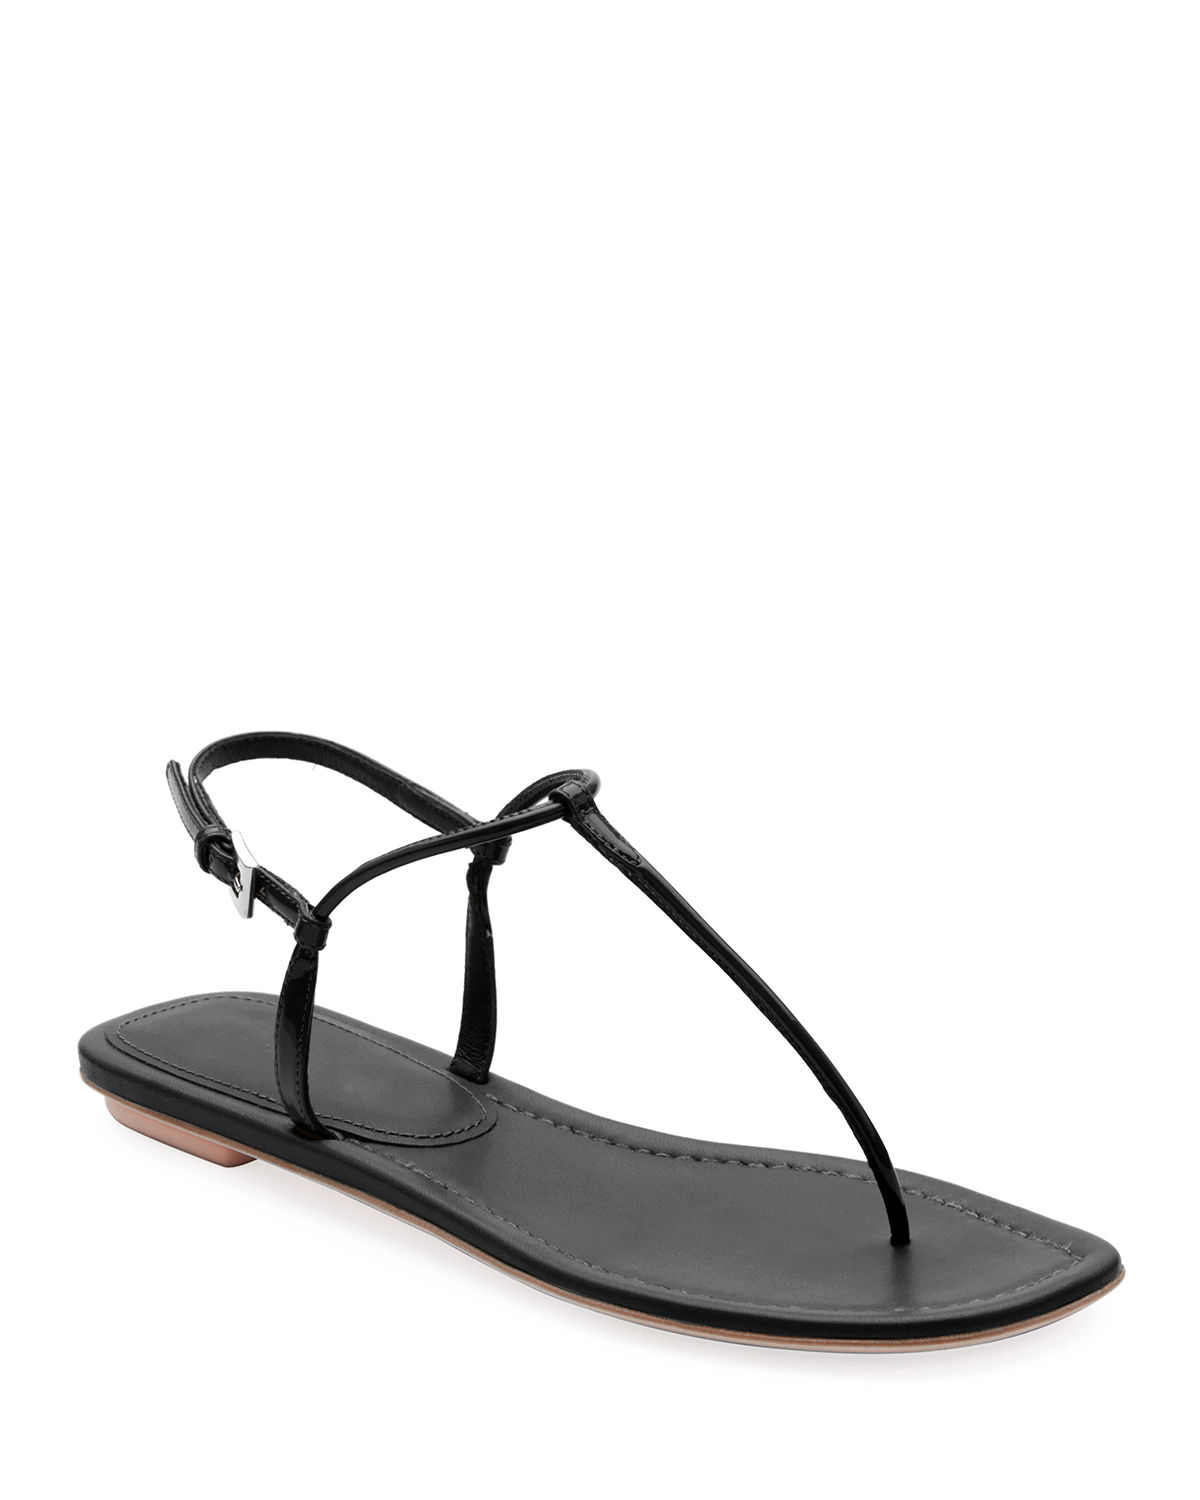 c351d54db383 Prada Flat Patent Leather Thong Sandals